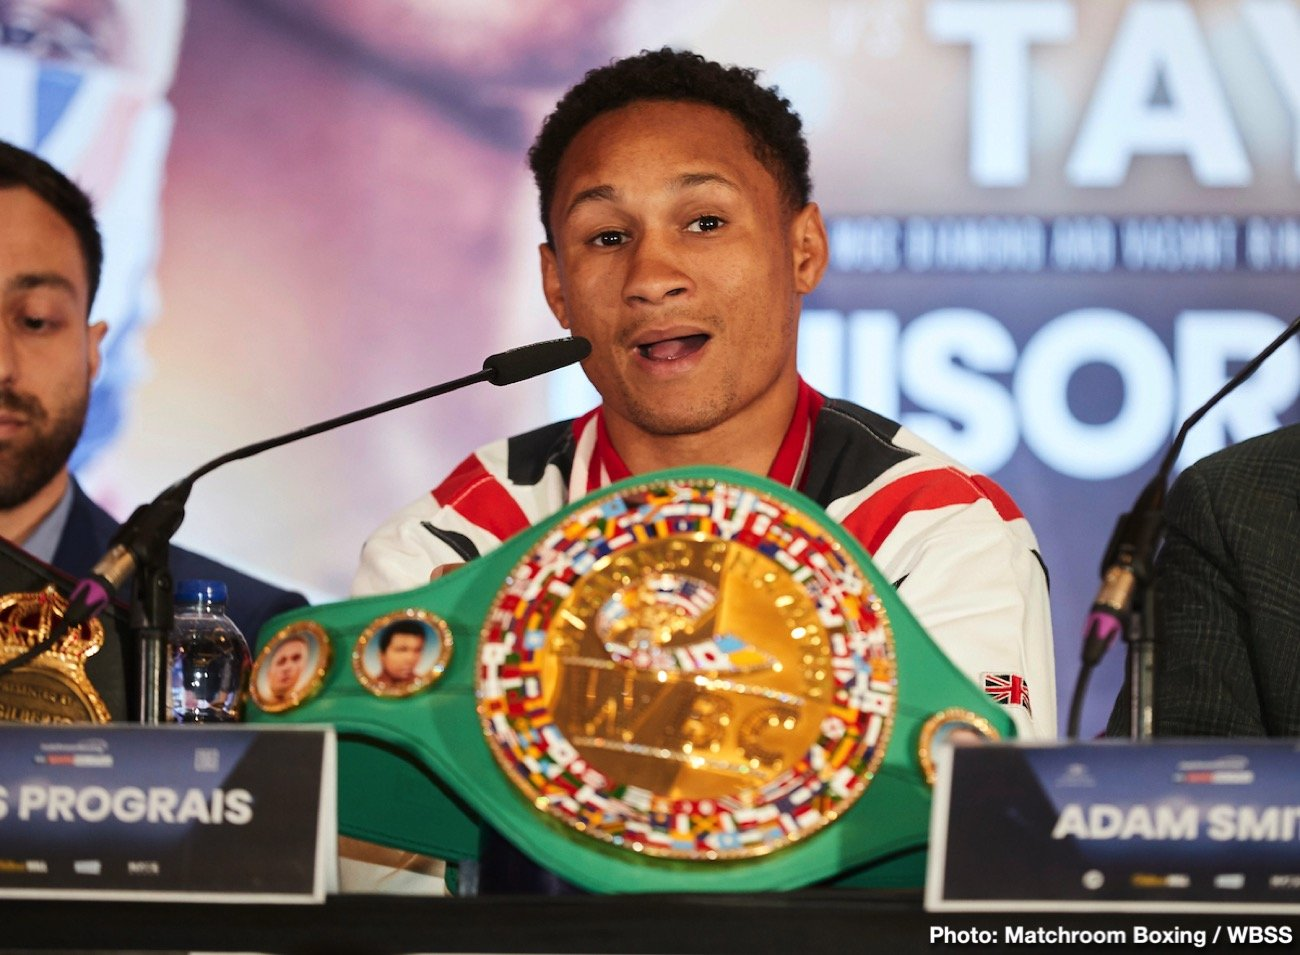 Errol Spence, Josh Taylor, Regis Prograis, Shawn Porter, Terence Crawford - Prograis said what separated IBF welterweight champion Spence (26-0, 21 KOs) and WBC champ Porter (30-3-1, 17 KOs) was the 11th round knockdown that Errol scored.